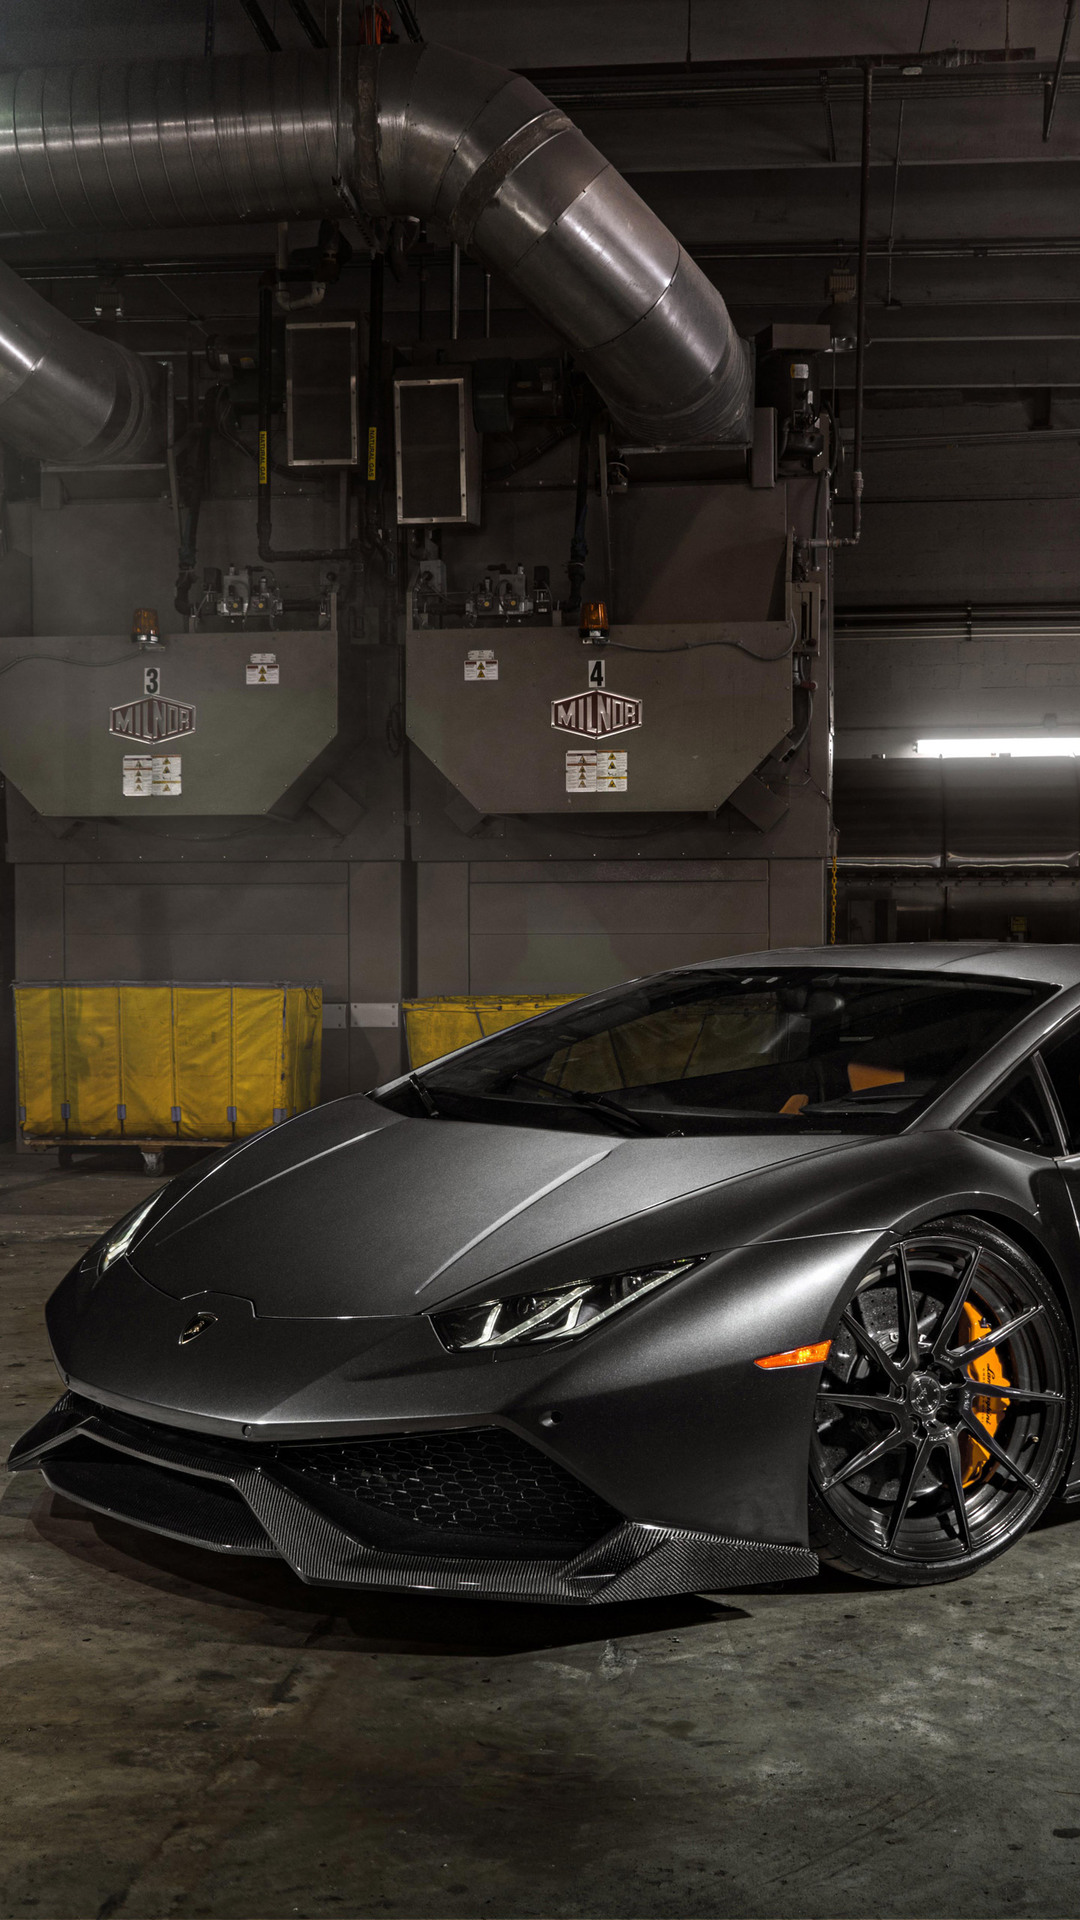 1080x1920 lamborghini huracan 8k iphone 7 6s 6 plus pixel. Black Bedroom Furniture Sets. Home Design Ideas